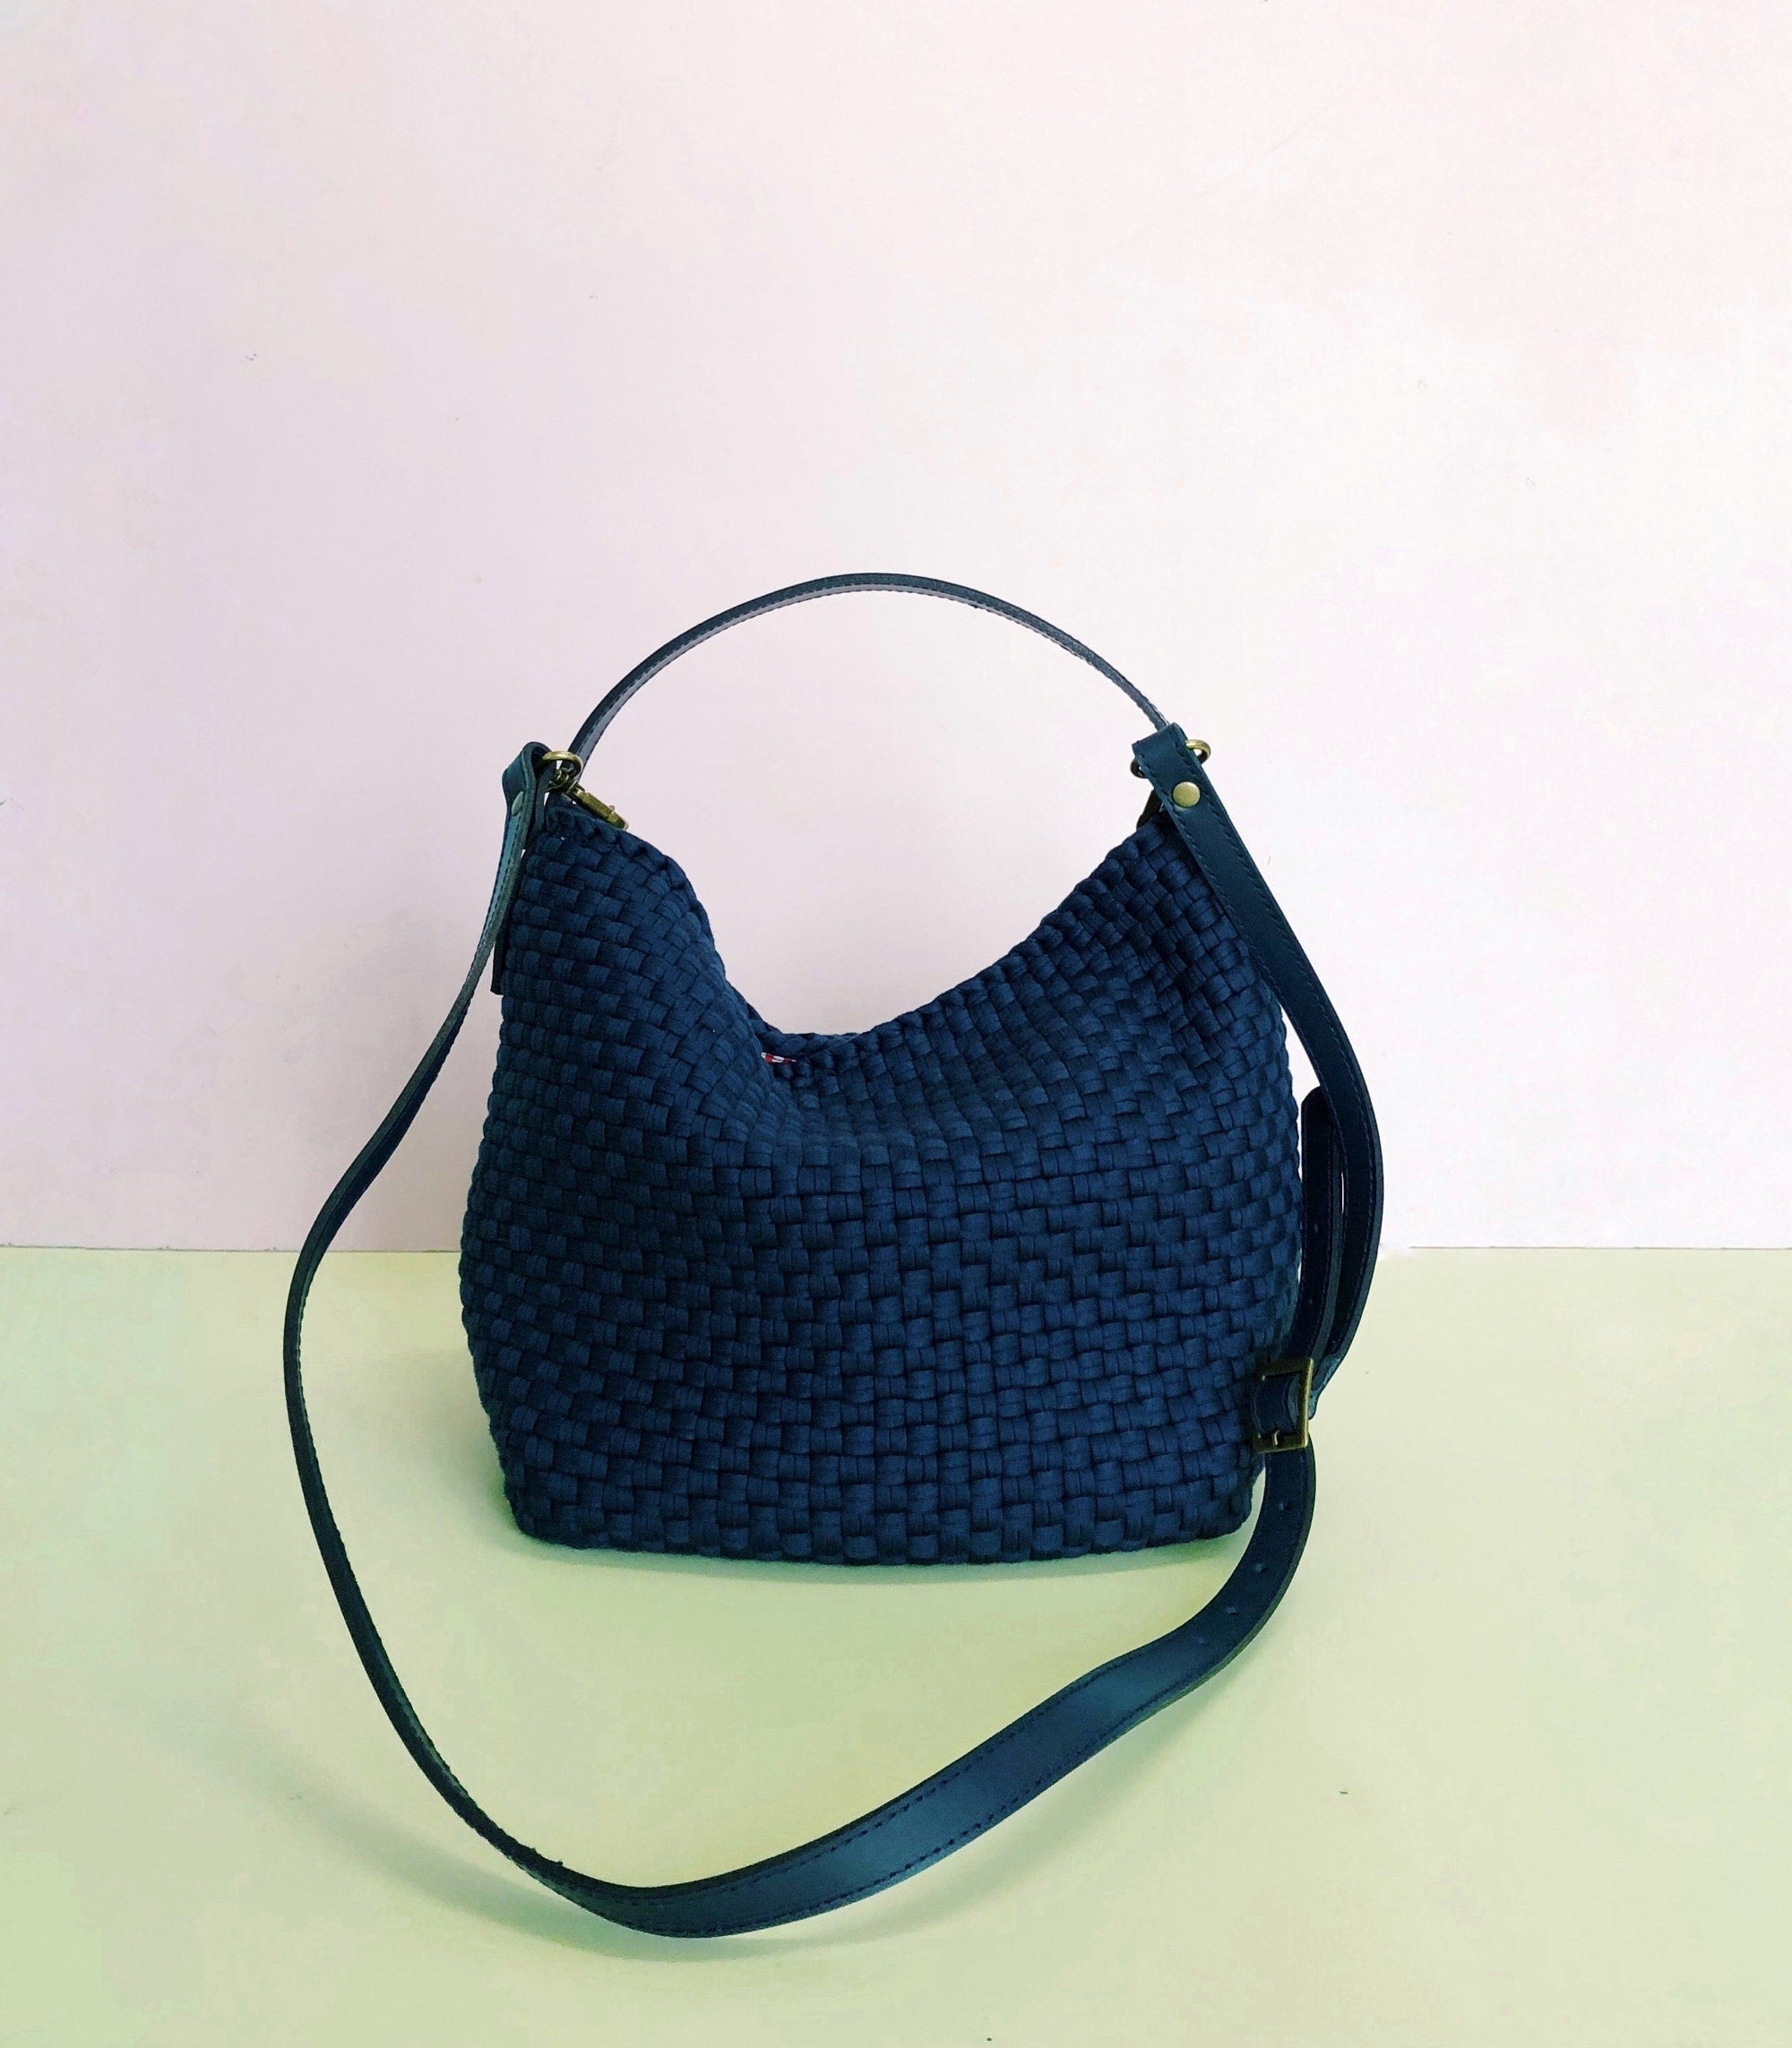 Rags2Riches Buslo Mini in Navy with Navy Leather